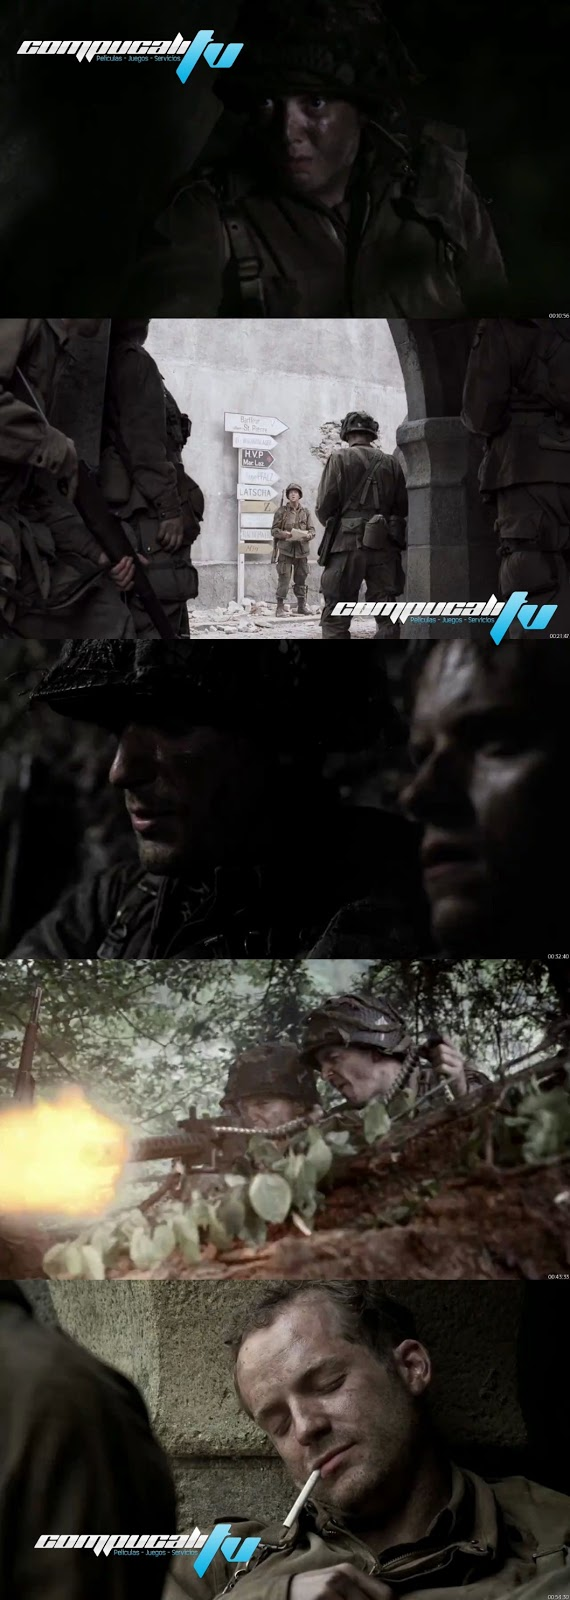 Band of Brothers Temporada 1 Completa Español Latino